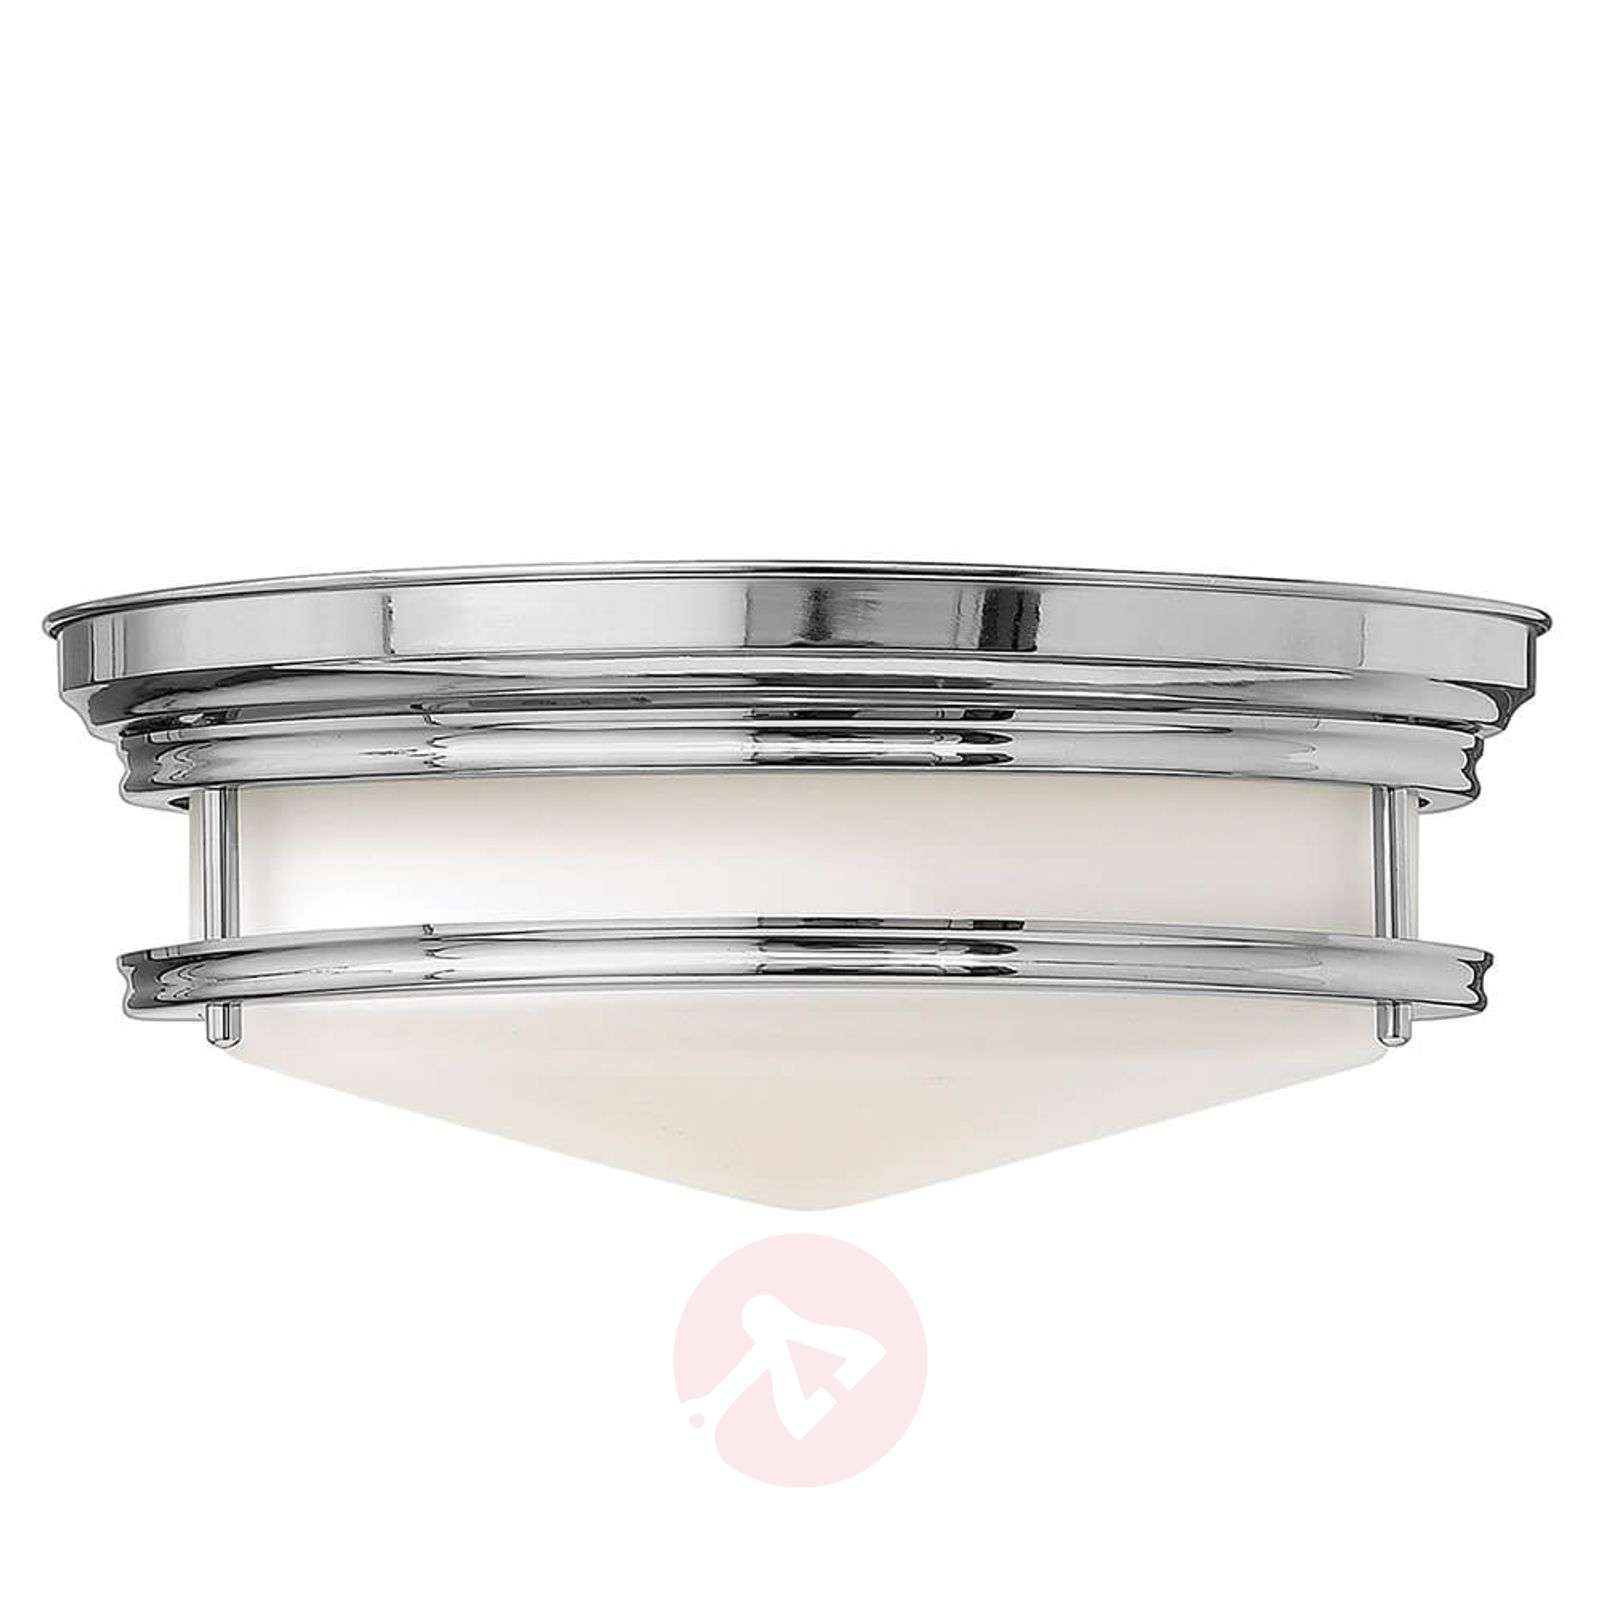 Designed in a retro style ceiling light Hadley-3048582-01